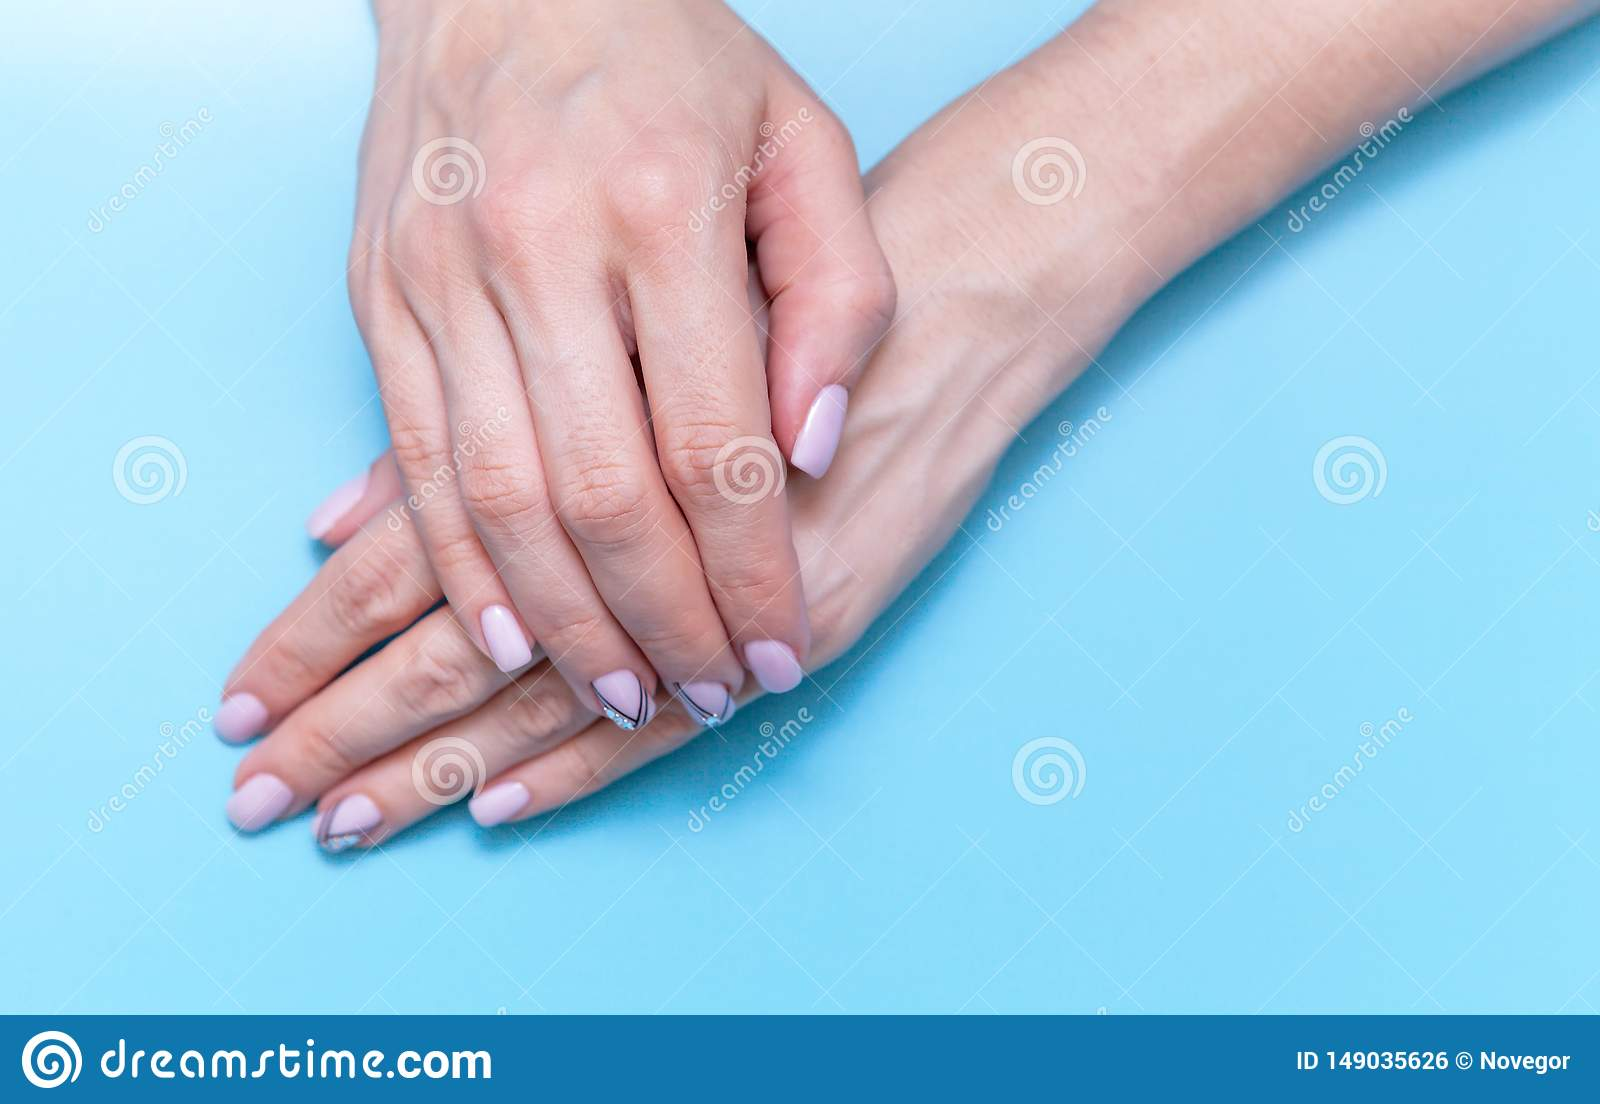 Fashion hand art women, hand with bright contrast makeup and beautiful nails, hand care. Creative beauty photo girl on blue